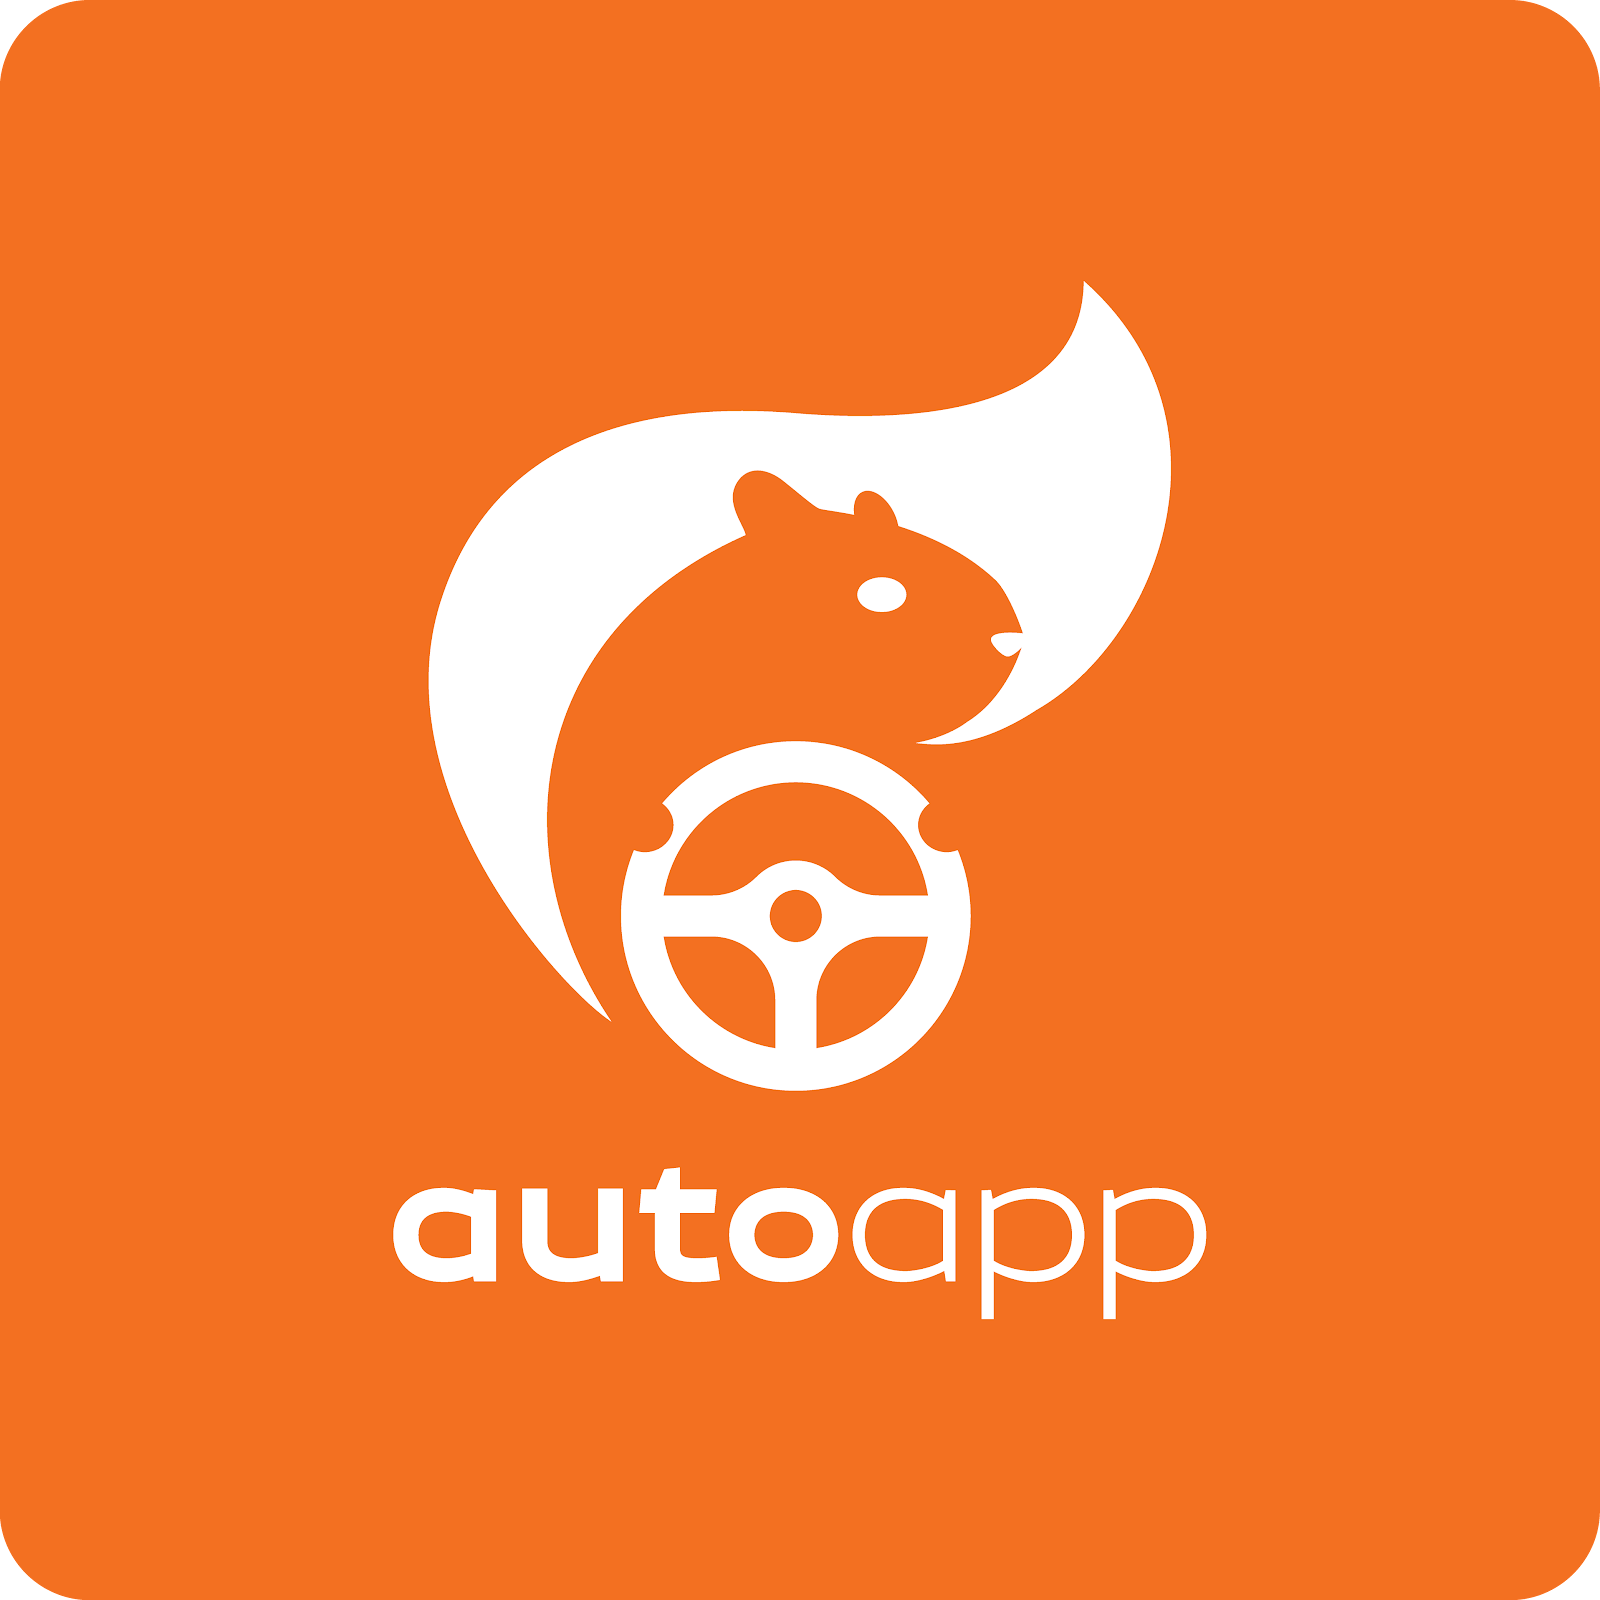 AutoApp squirrel logo